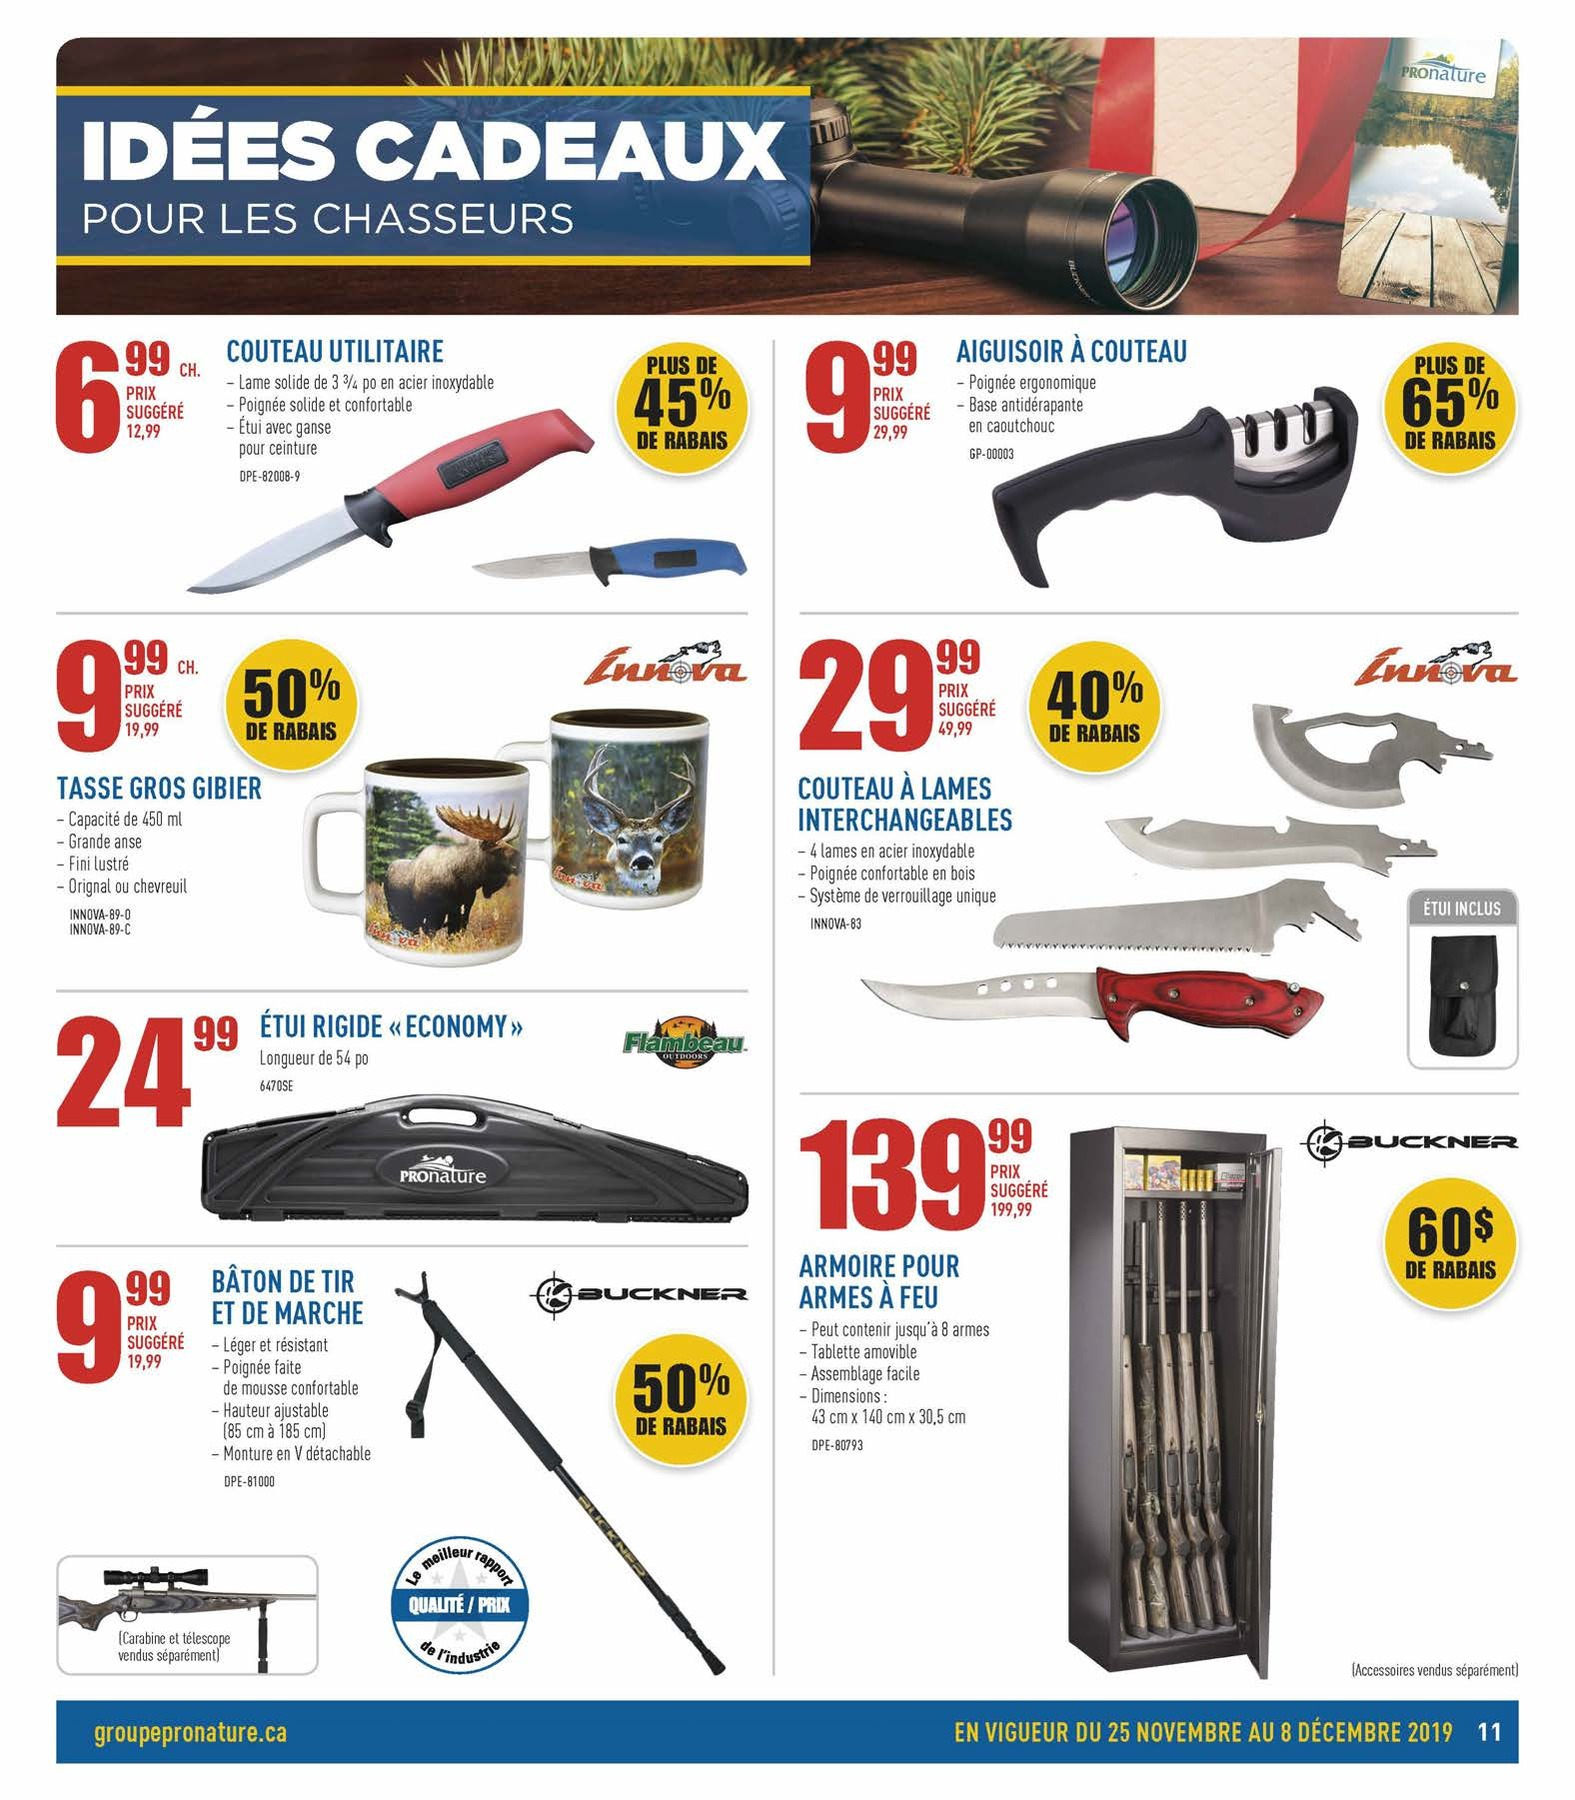 Flyer 191124 45 page 11 fr 1573849006